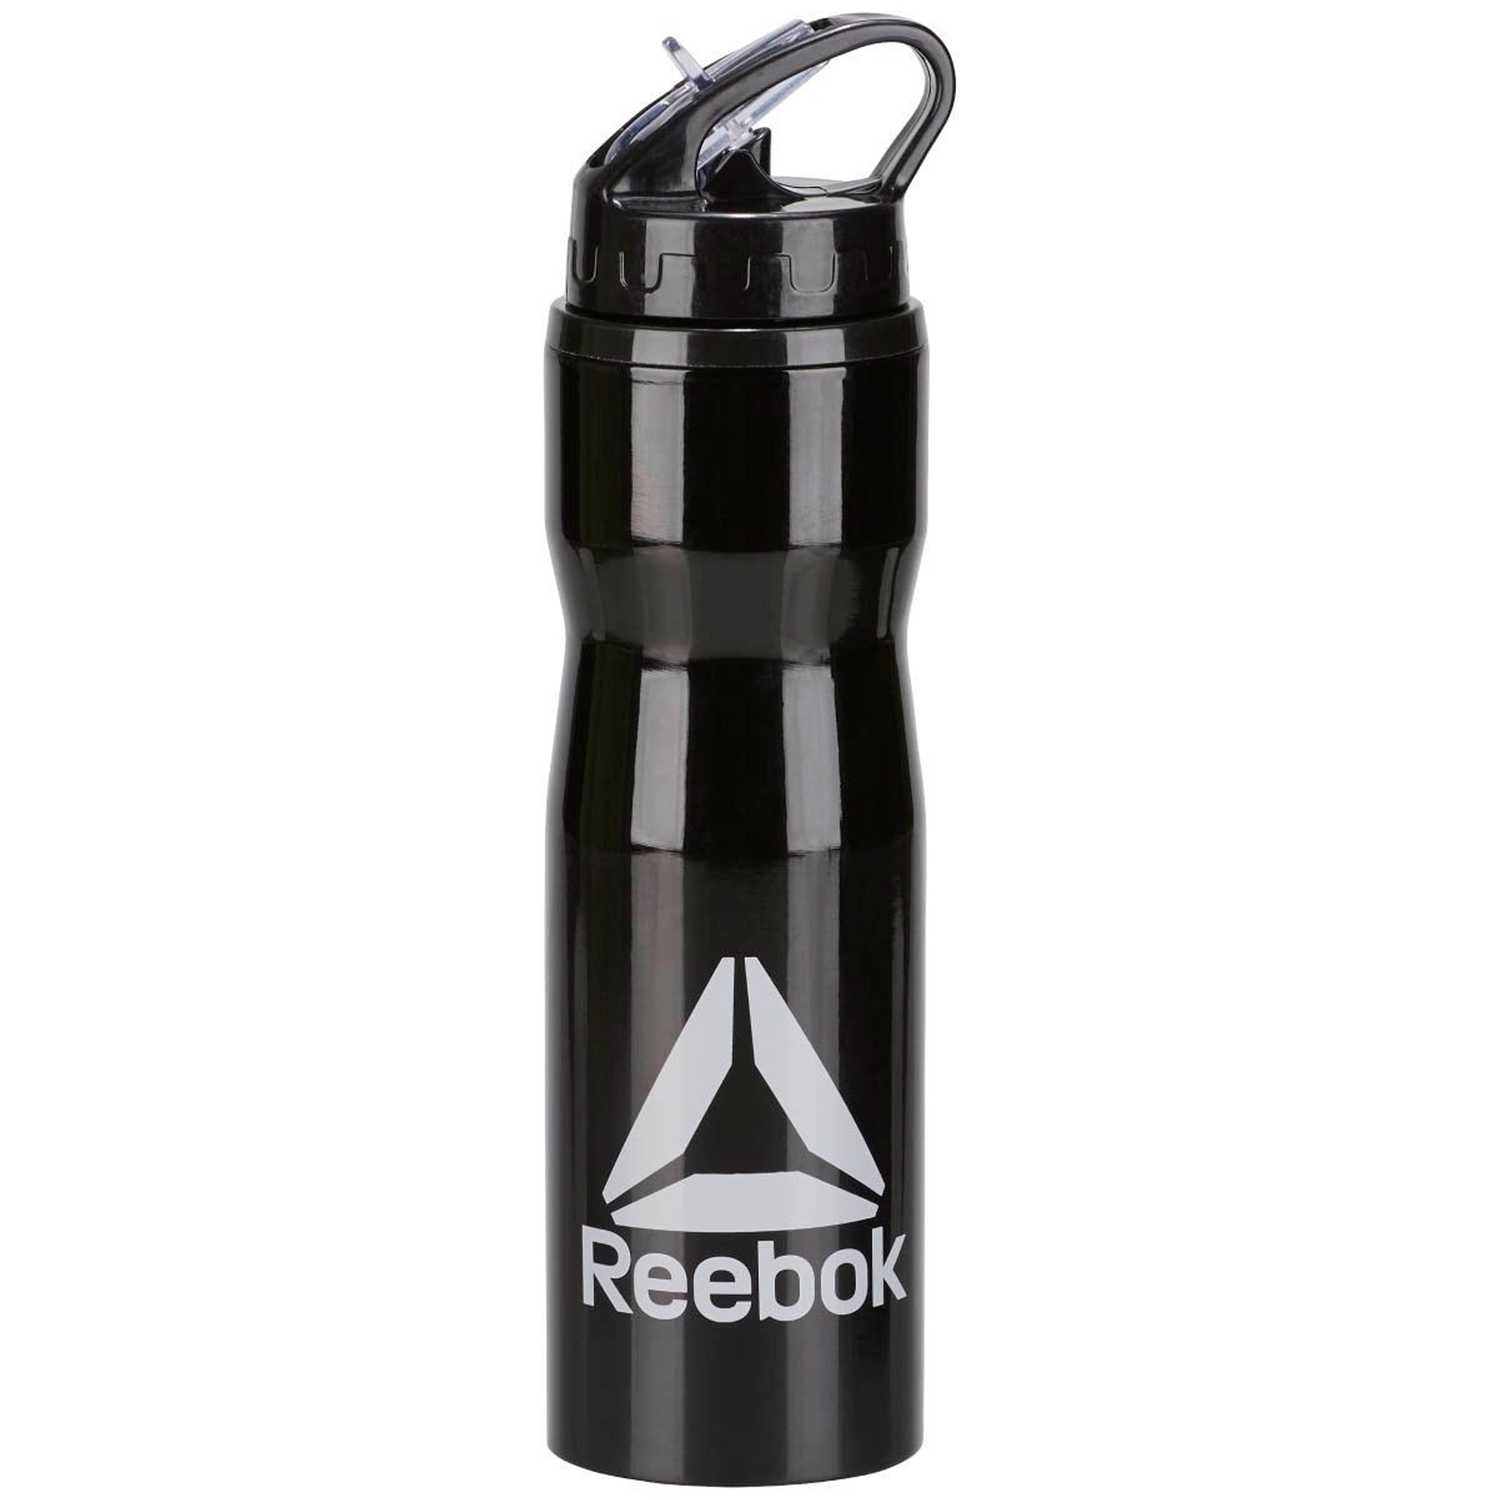 Reebok os u waterbot metal 750ml Negro / blanco Botellas de agua